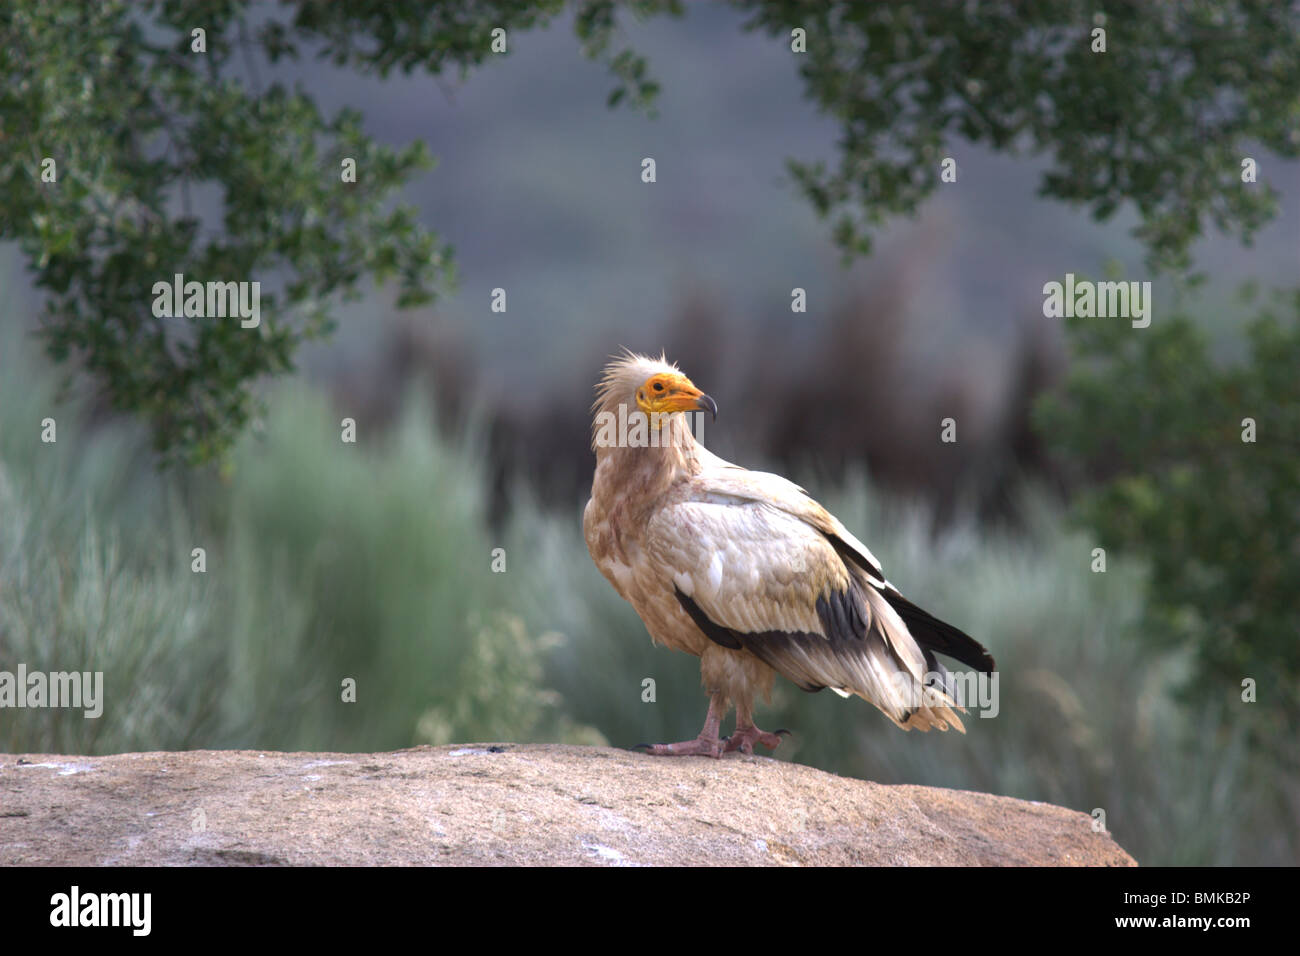 Egyptian vulture (Neophron percnopterus) - Stock Image